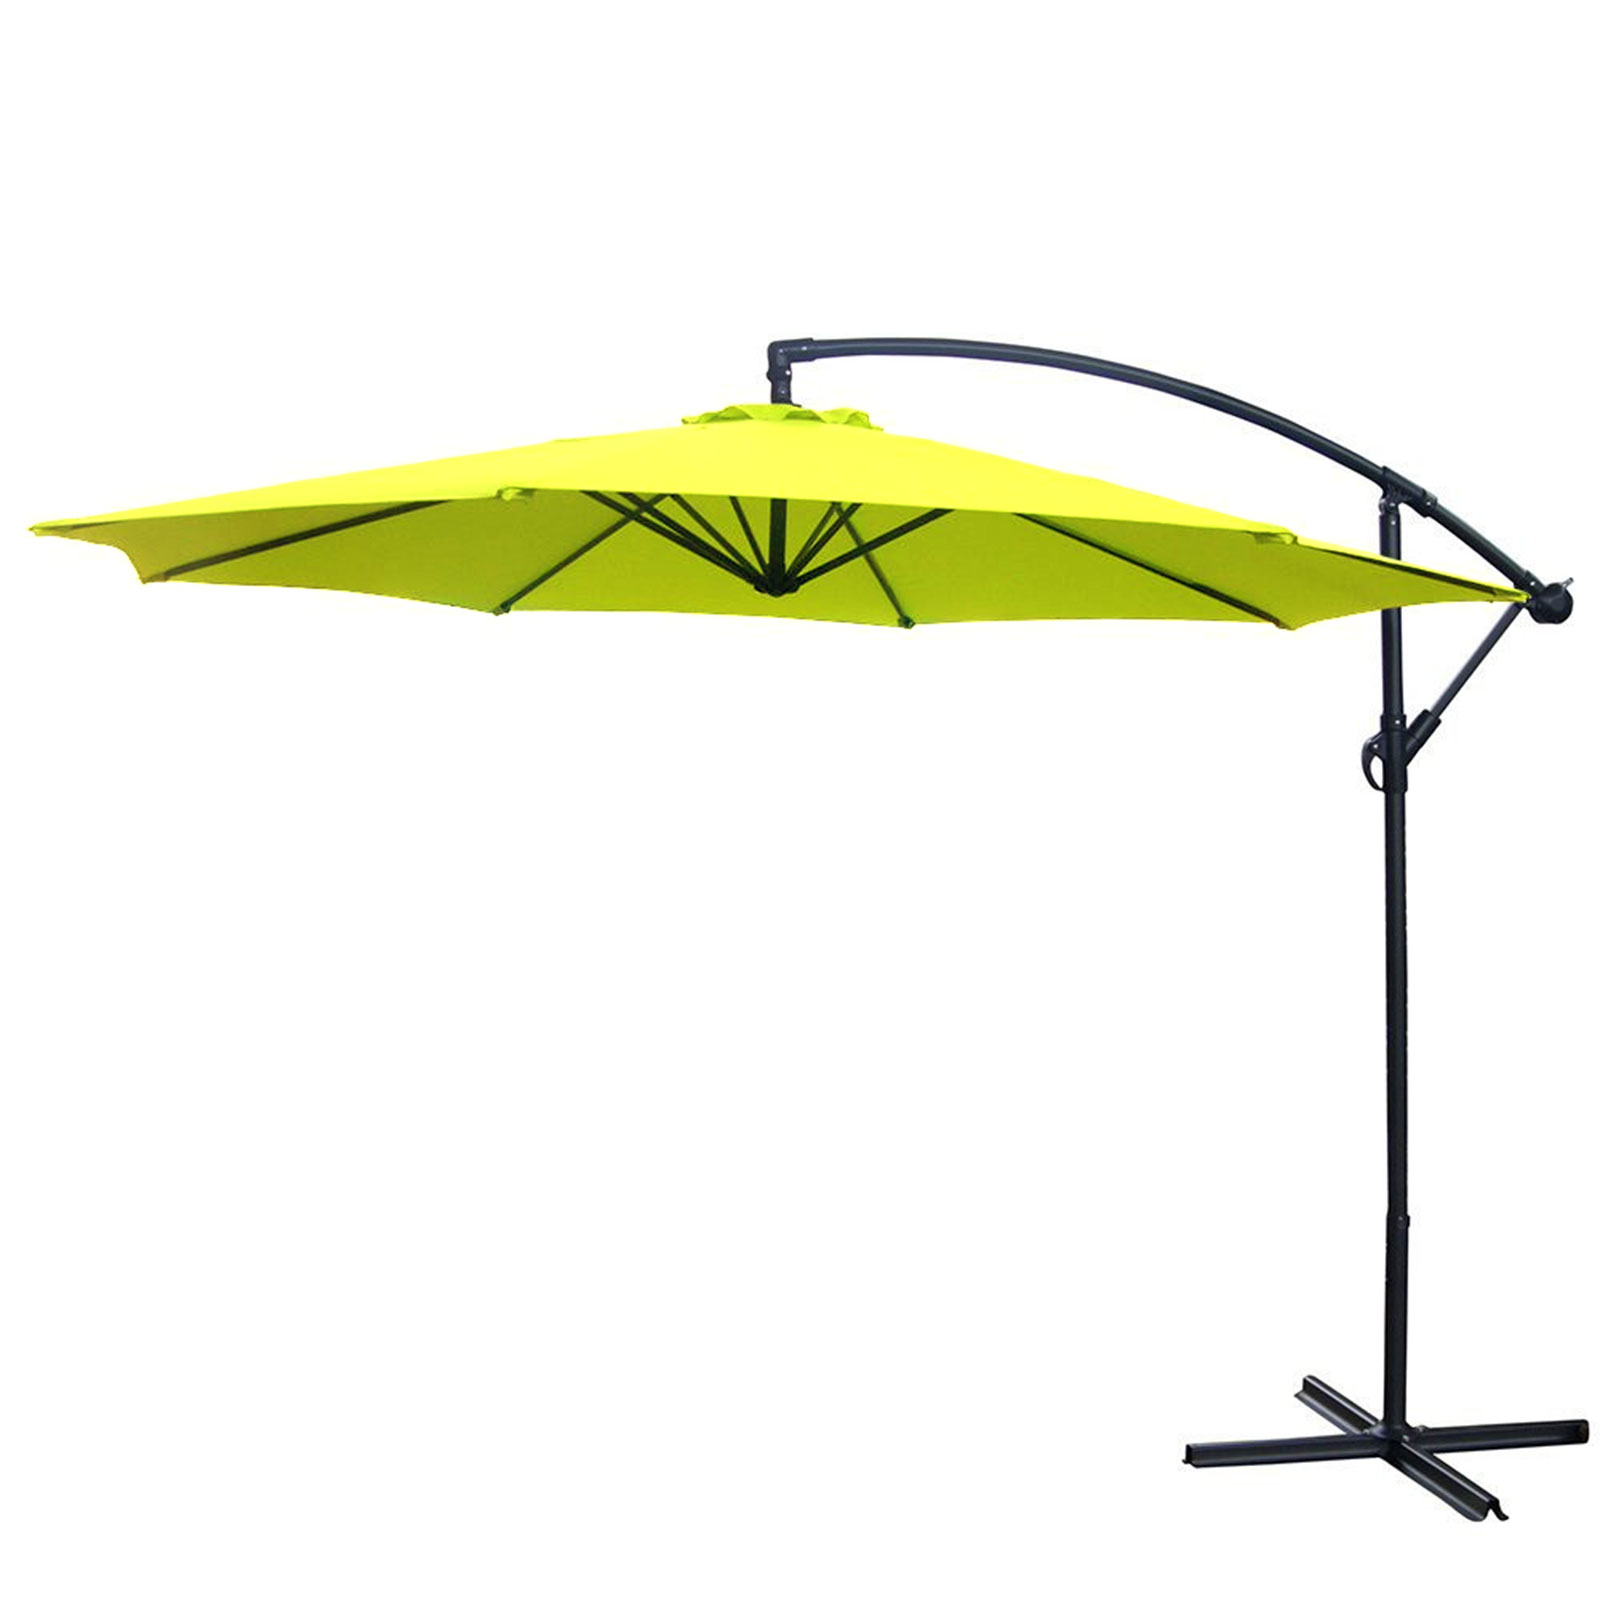 10 Foot Offset Patio Umbrella Lime Green Polyester Outdoor Aluminum Crank